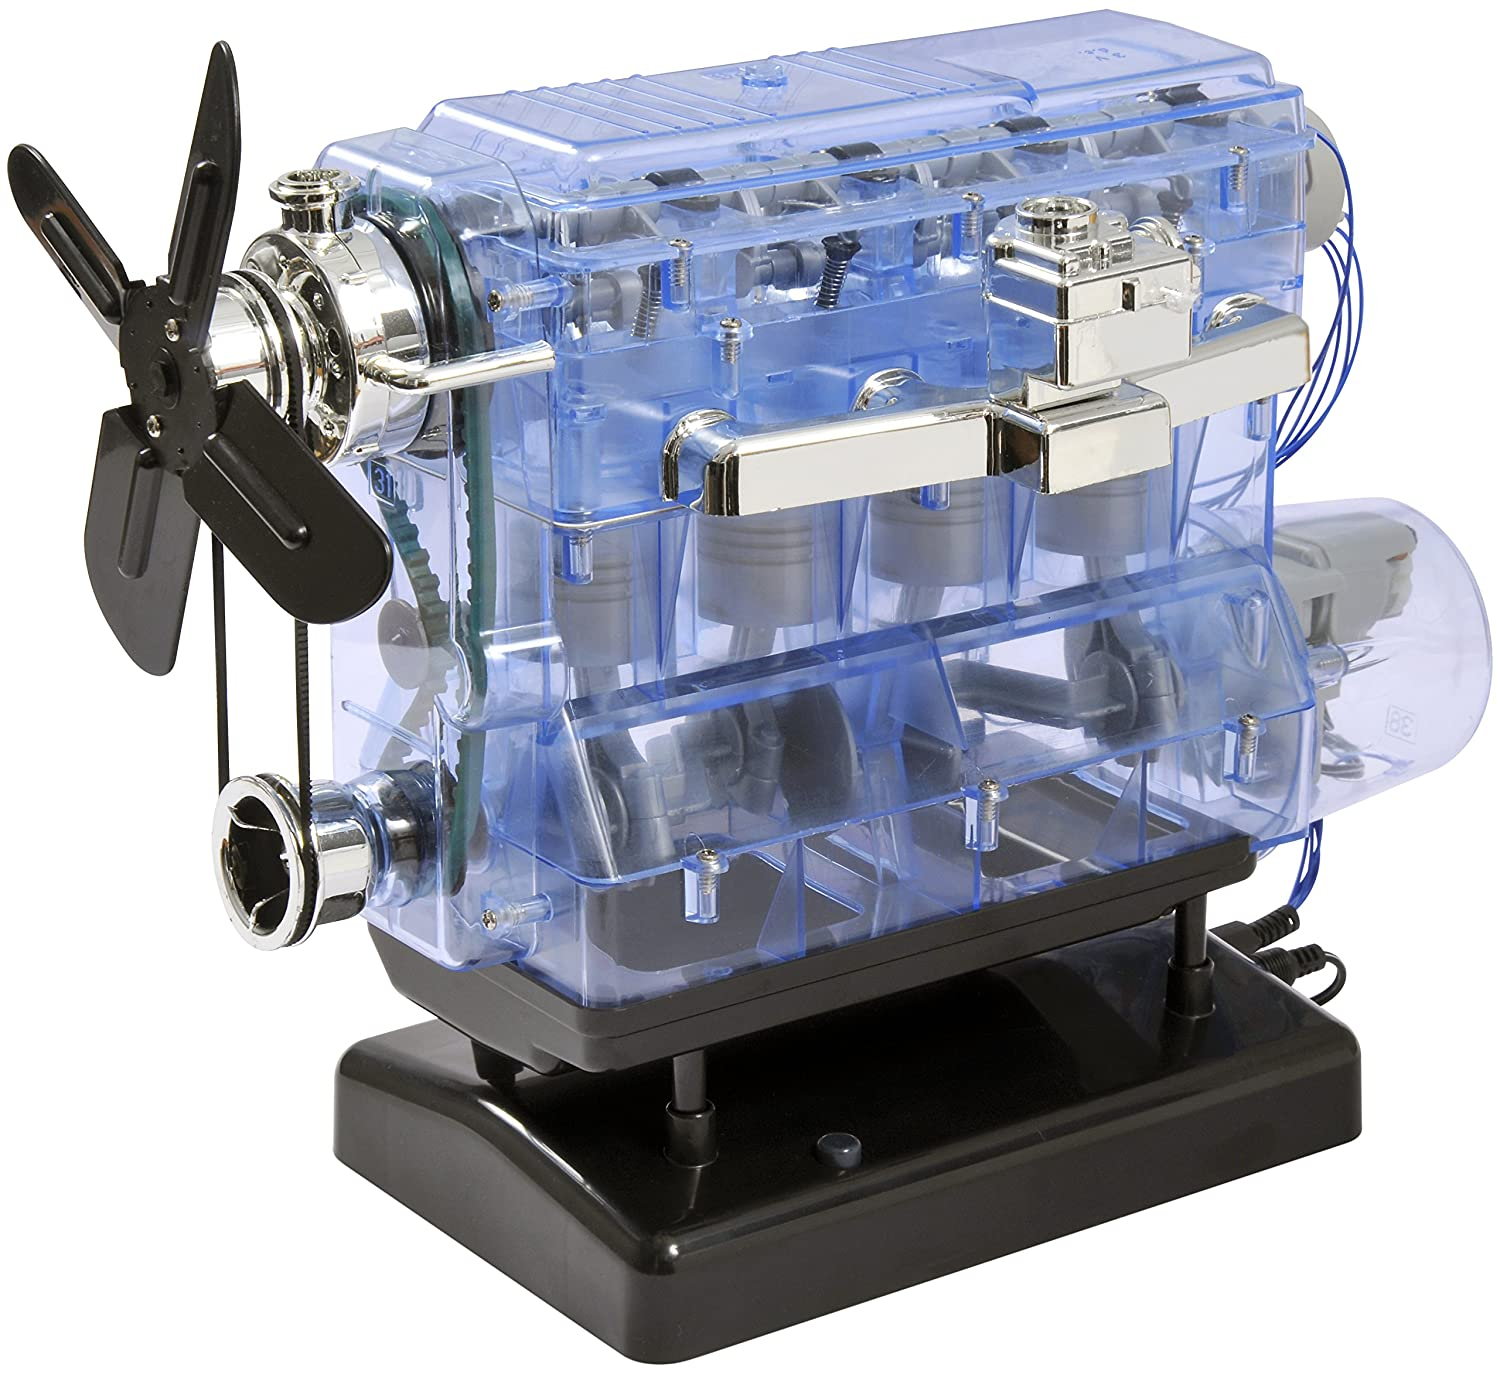 Haynes Build Your Own Internal Combustion Engine: Amazon.co.uk: Toys & Games